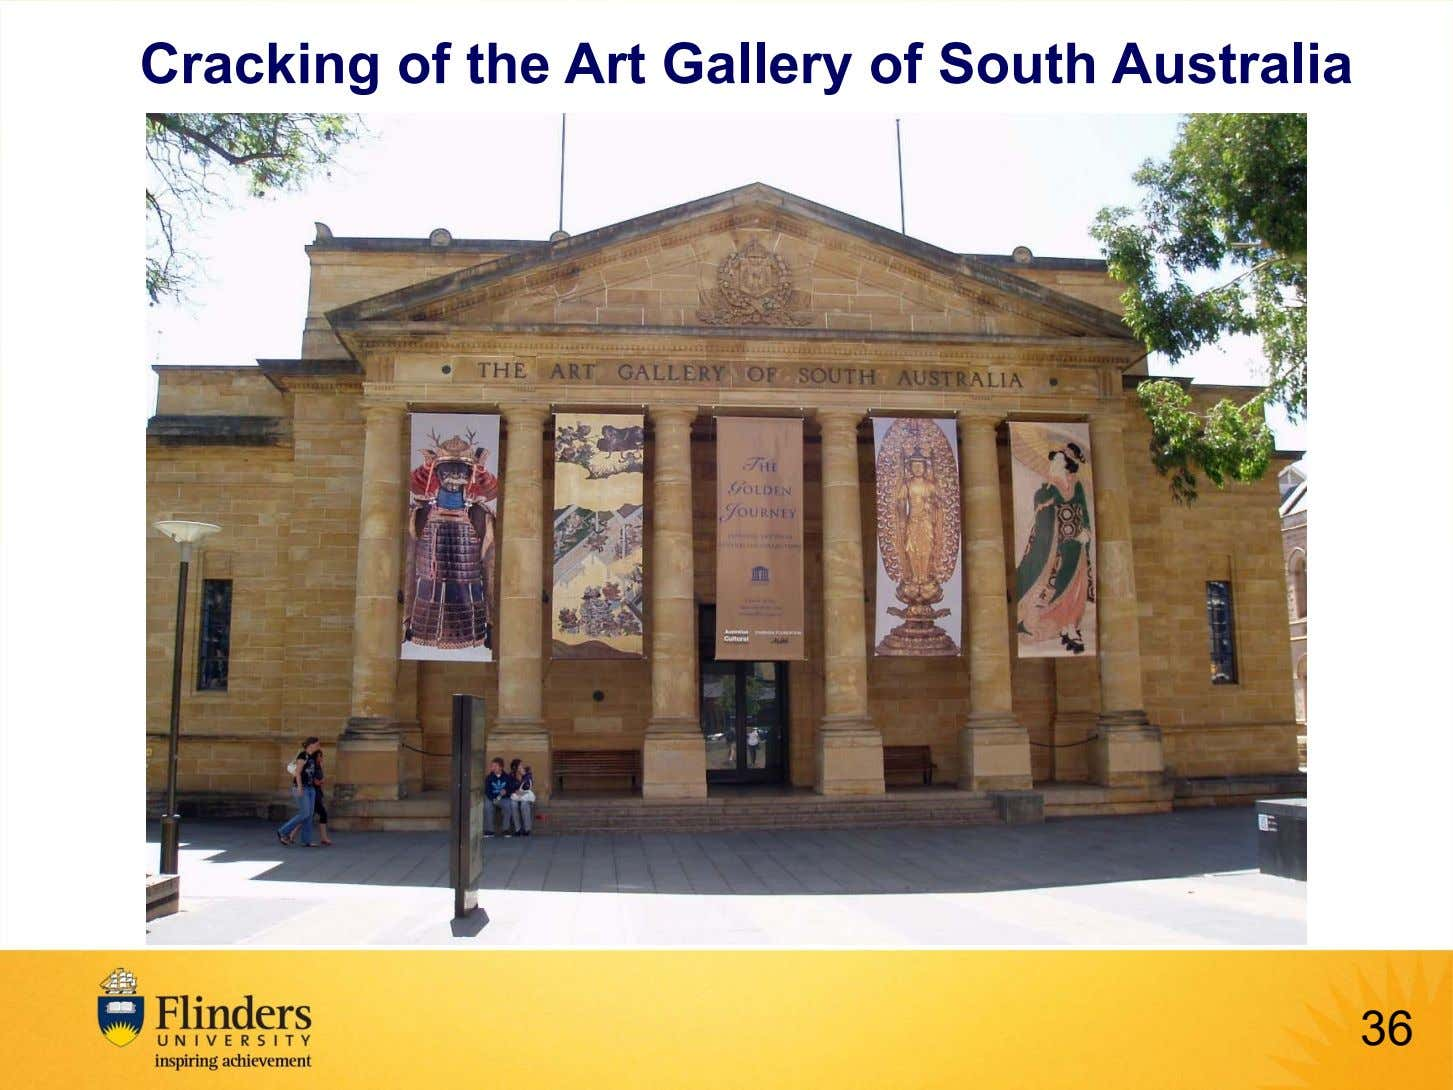 Cracking of the Art Gallery of South Australia 36